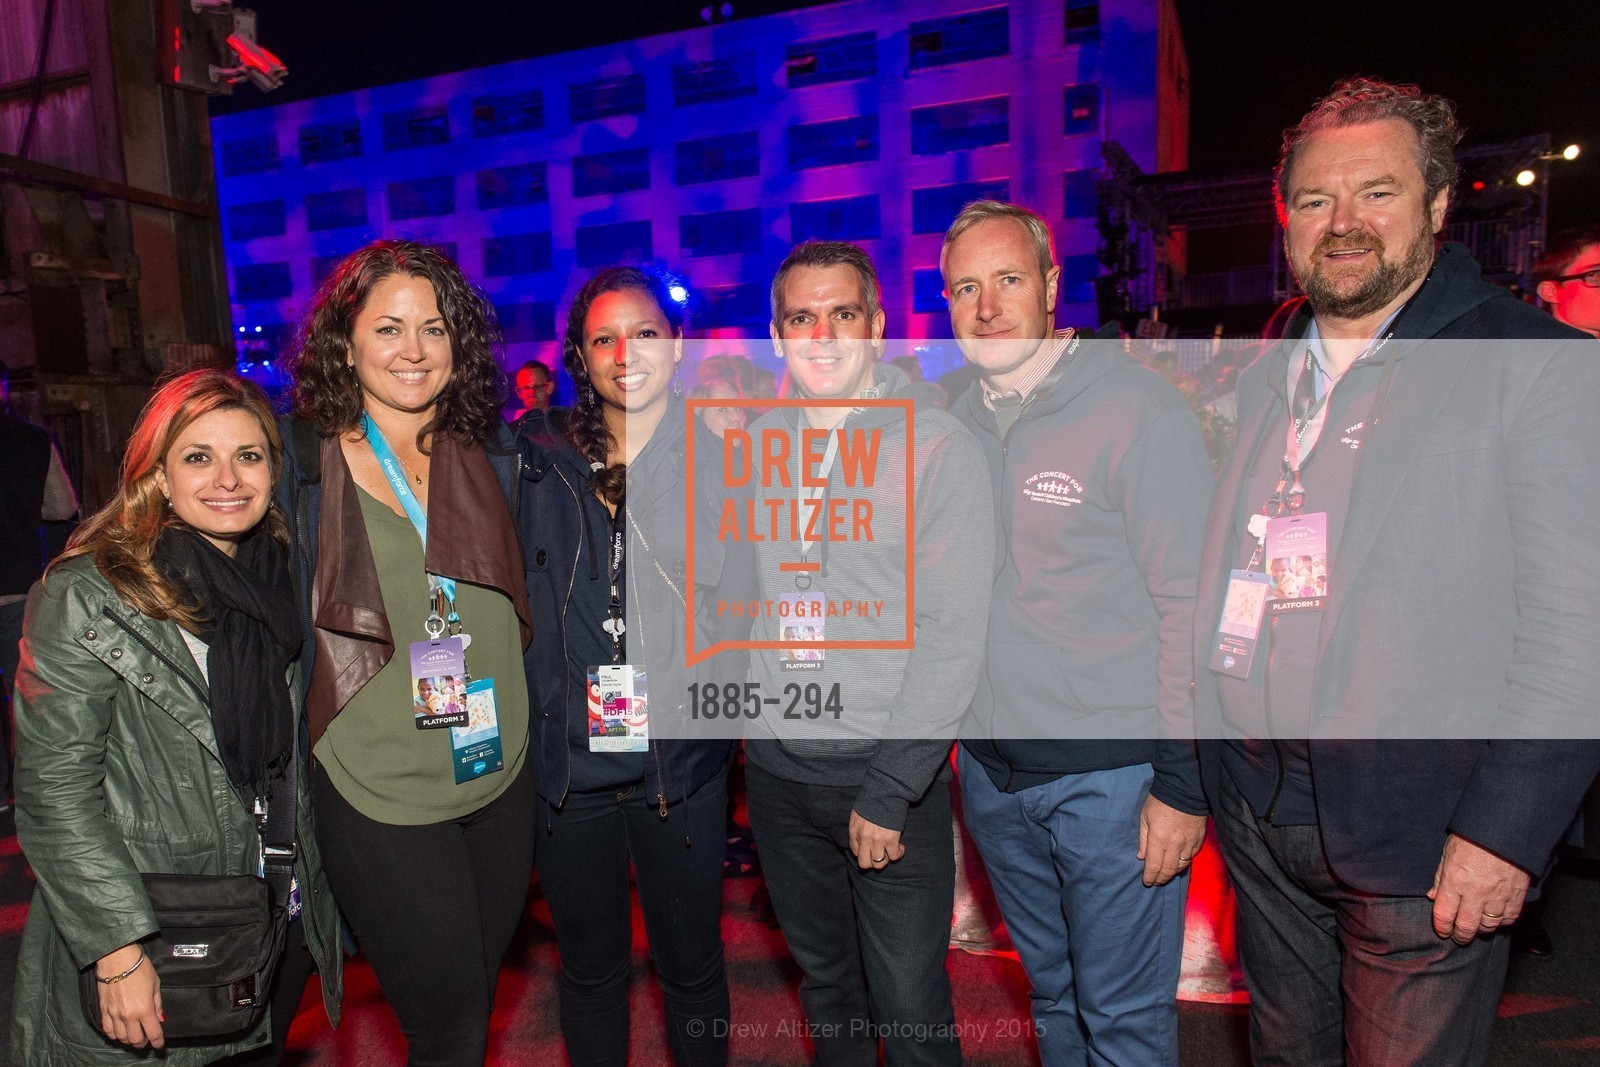 Bounia Lievan, Tracy Kambias, Nisa Badard, Greg Holden, Kevin Walsh, The Concert For UCSF Benioff Children's Hospital, Pier 70, September 17th, 2015,Drew Altizer, Drew Altizer Photography, full-service event agency, private events, San Francisco photographer, photographer California